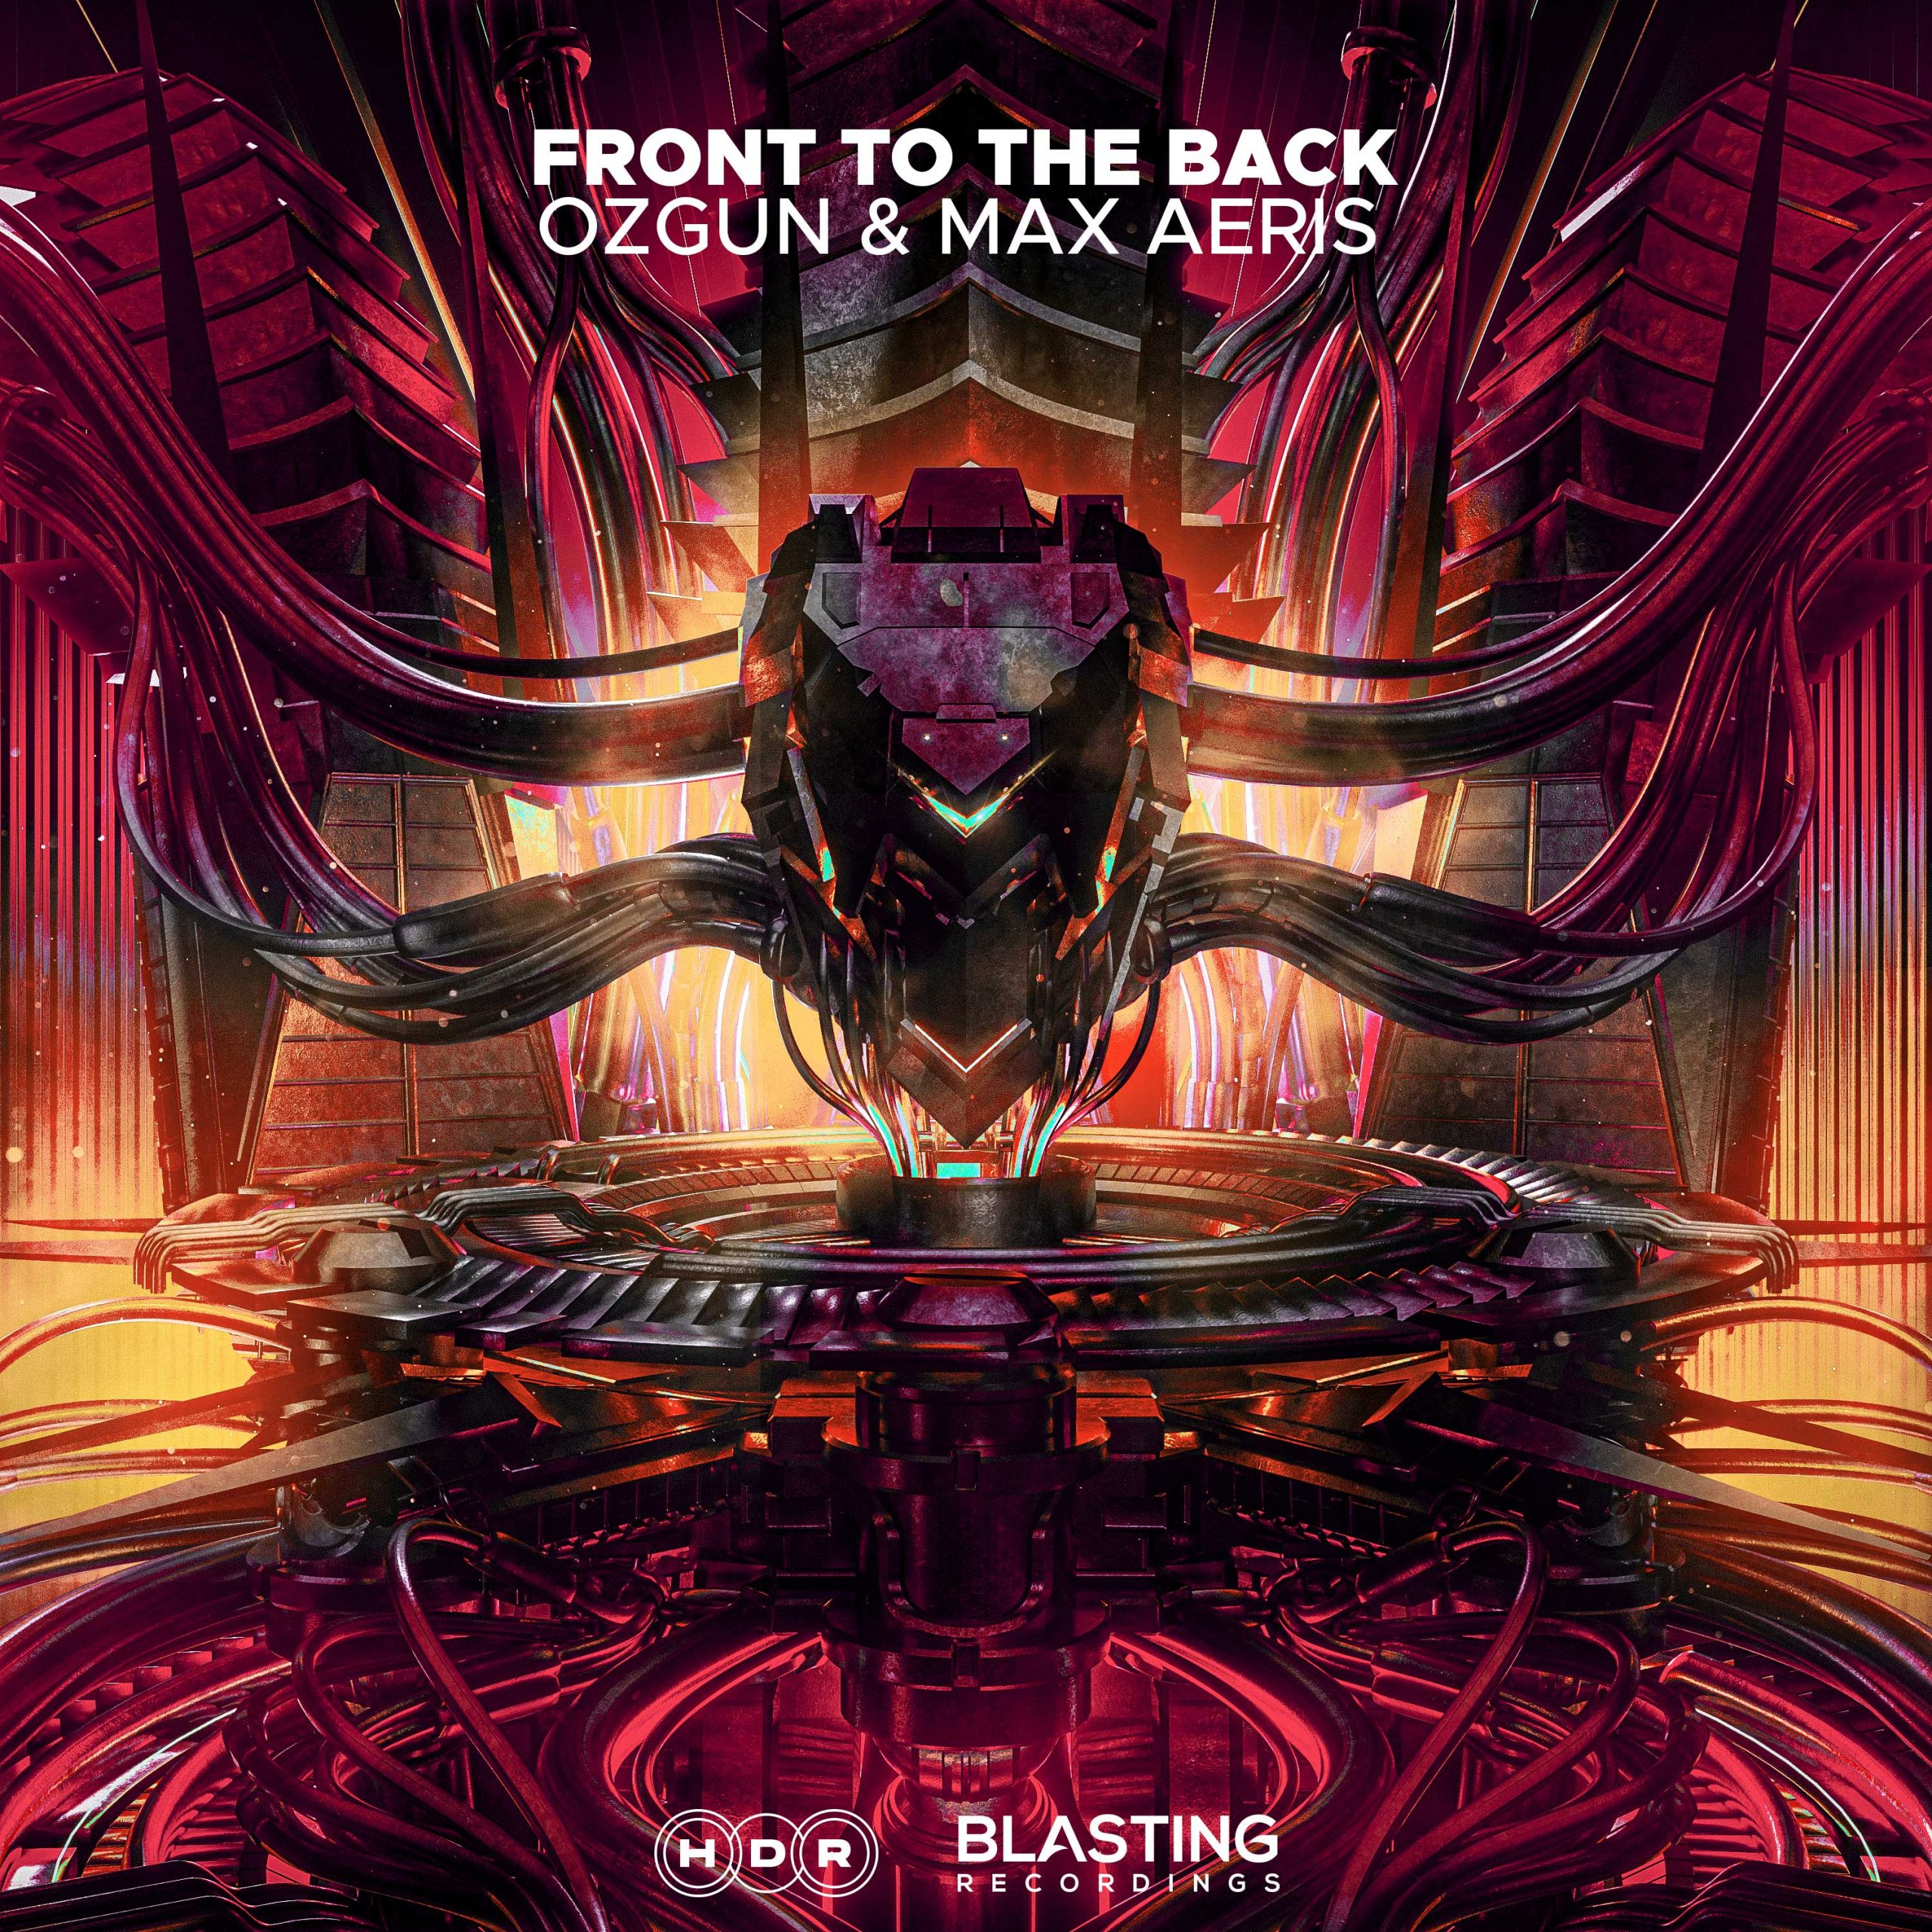 Ozgun, Max Aeris - Front To The Back